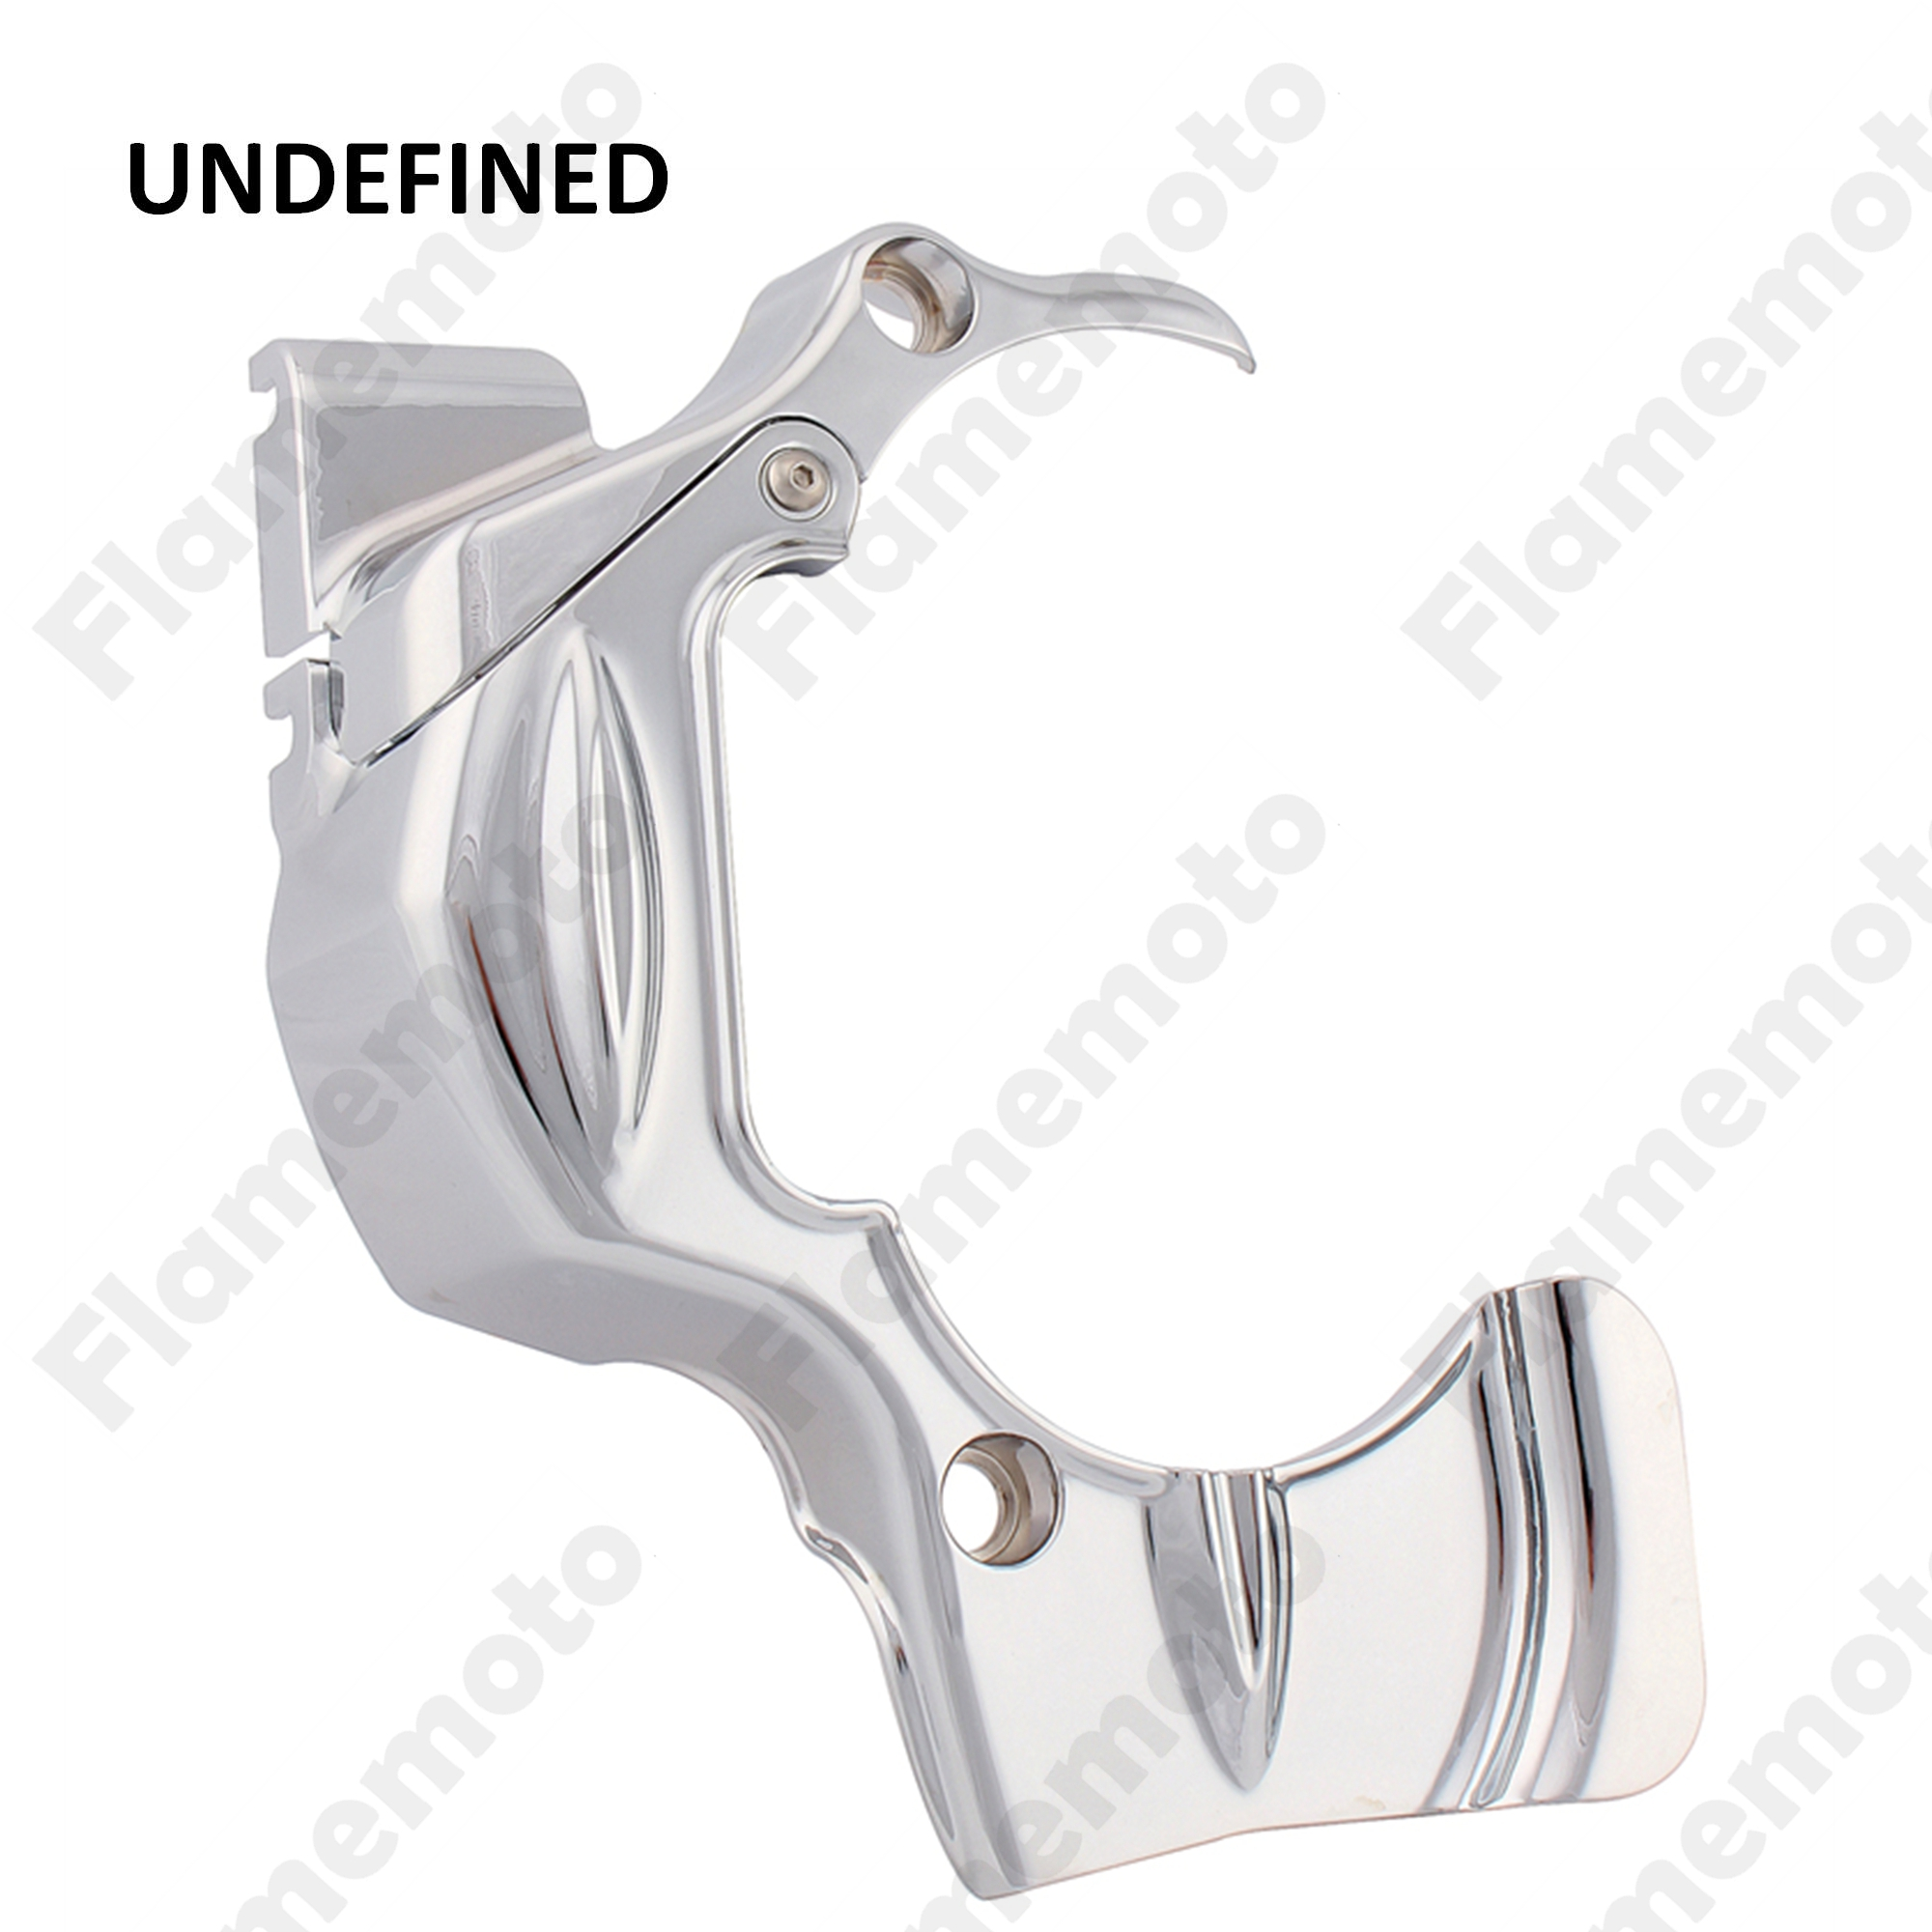 Motorcycle Transmission Shroud Cover Trim For Harley Touring CVO FLHT FLHX FLHR 2009 2010 2011 2012 2013-2016 Chrome UNDEFINED